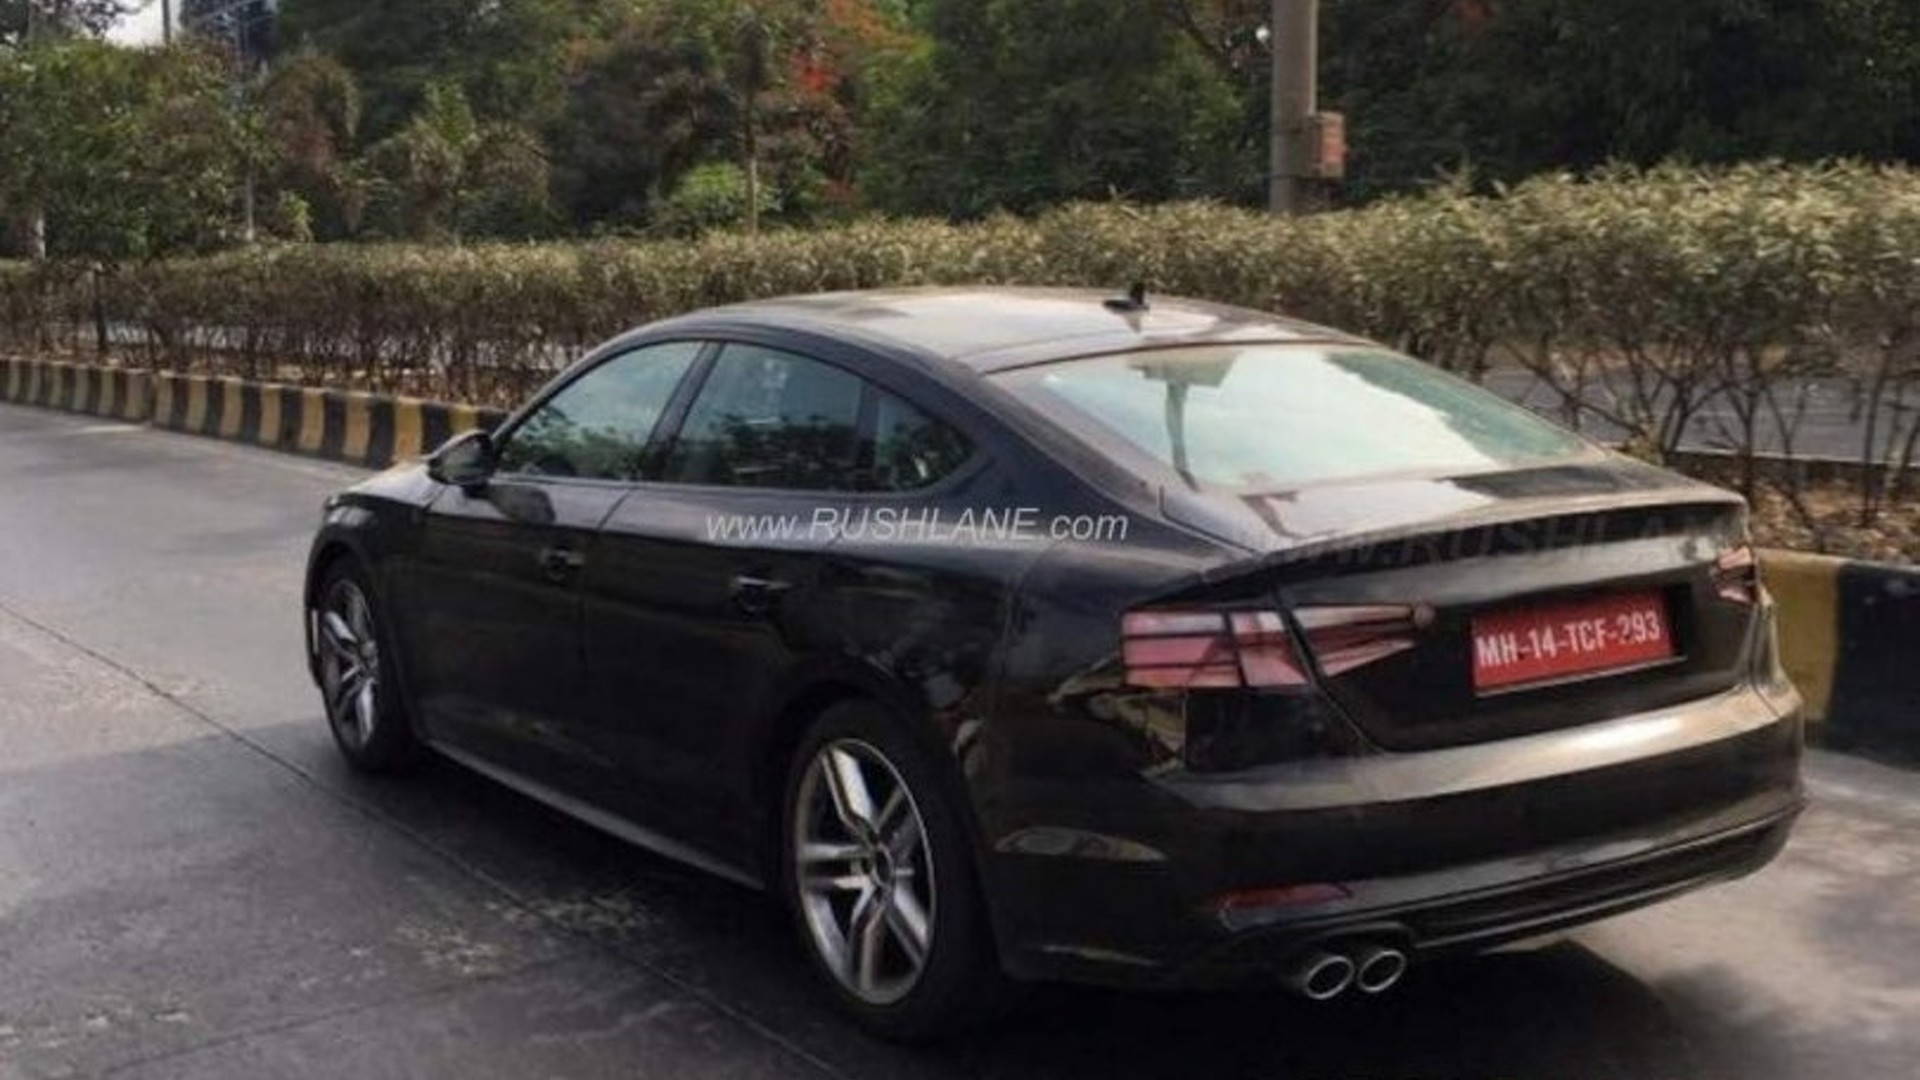 2017 Audi A5 Sportback Spied In India With Clever Disguise 2008 Passat Fuse Box Diagram